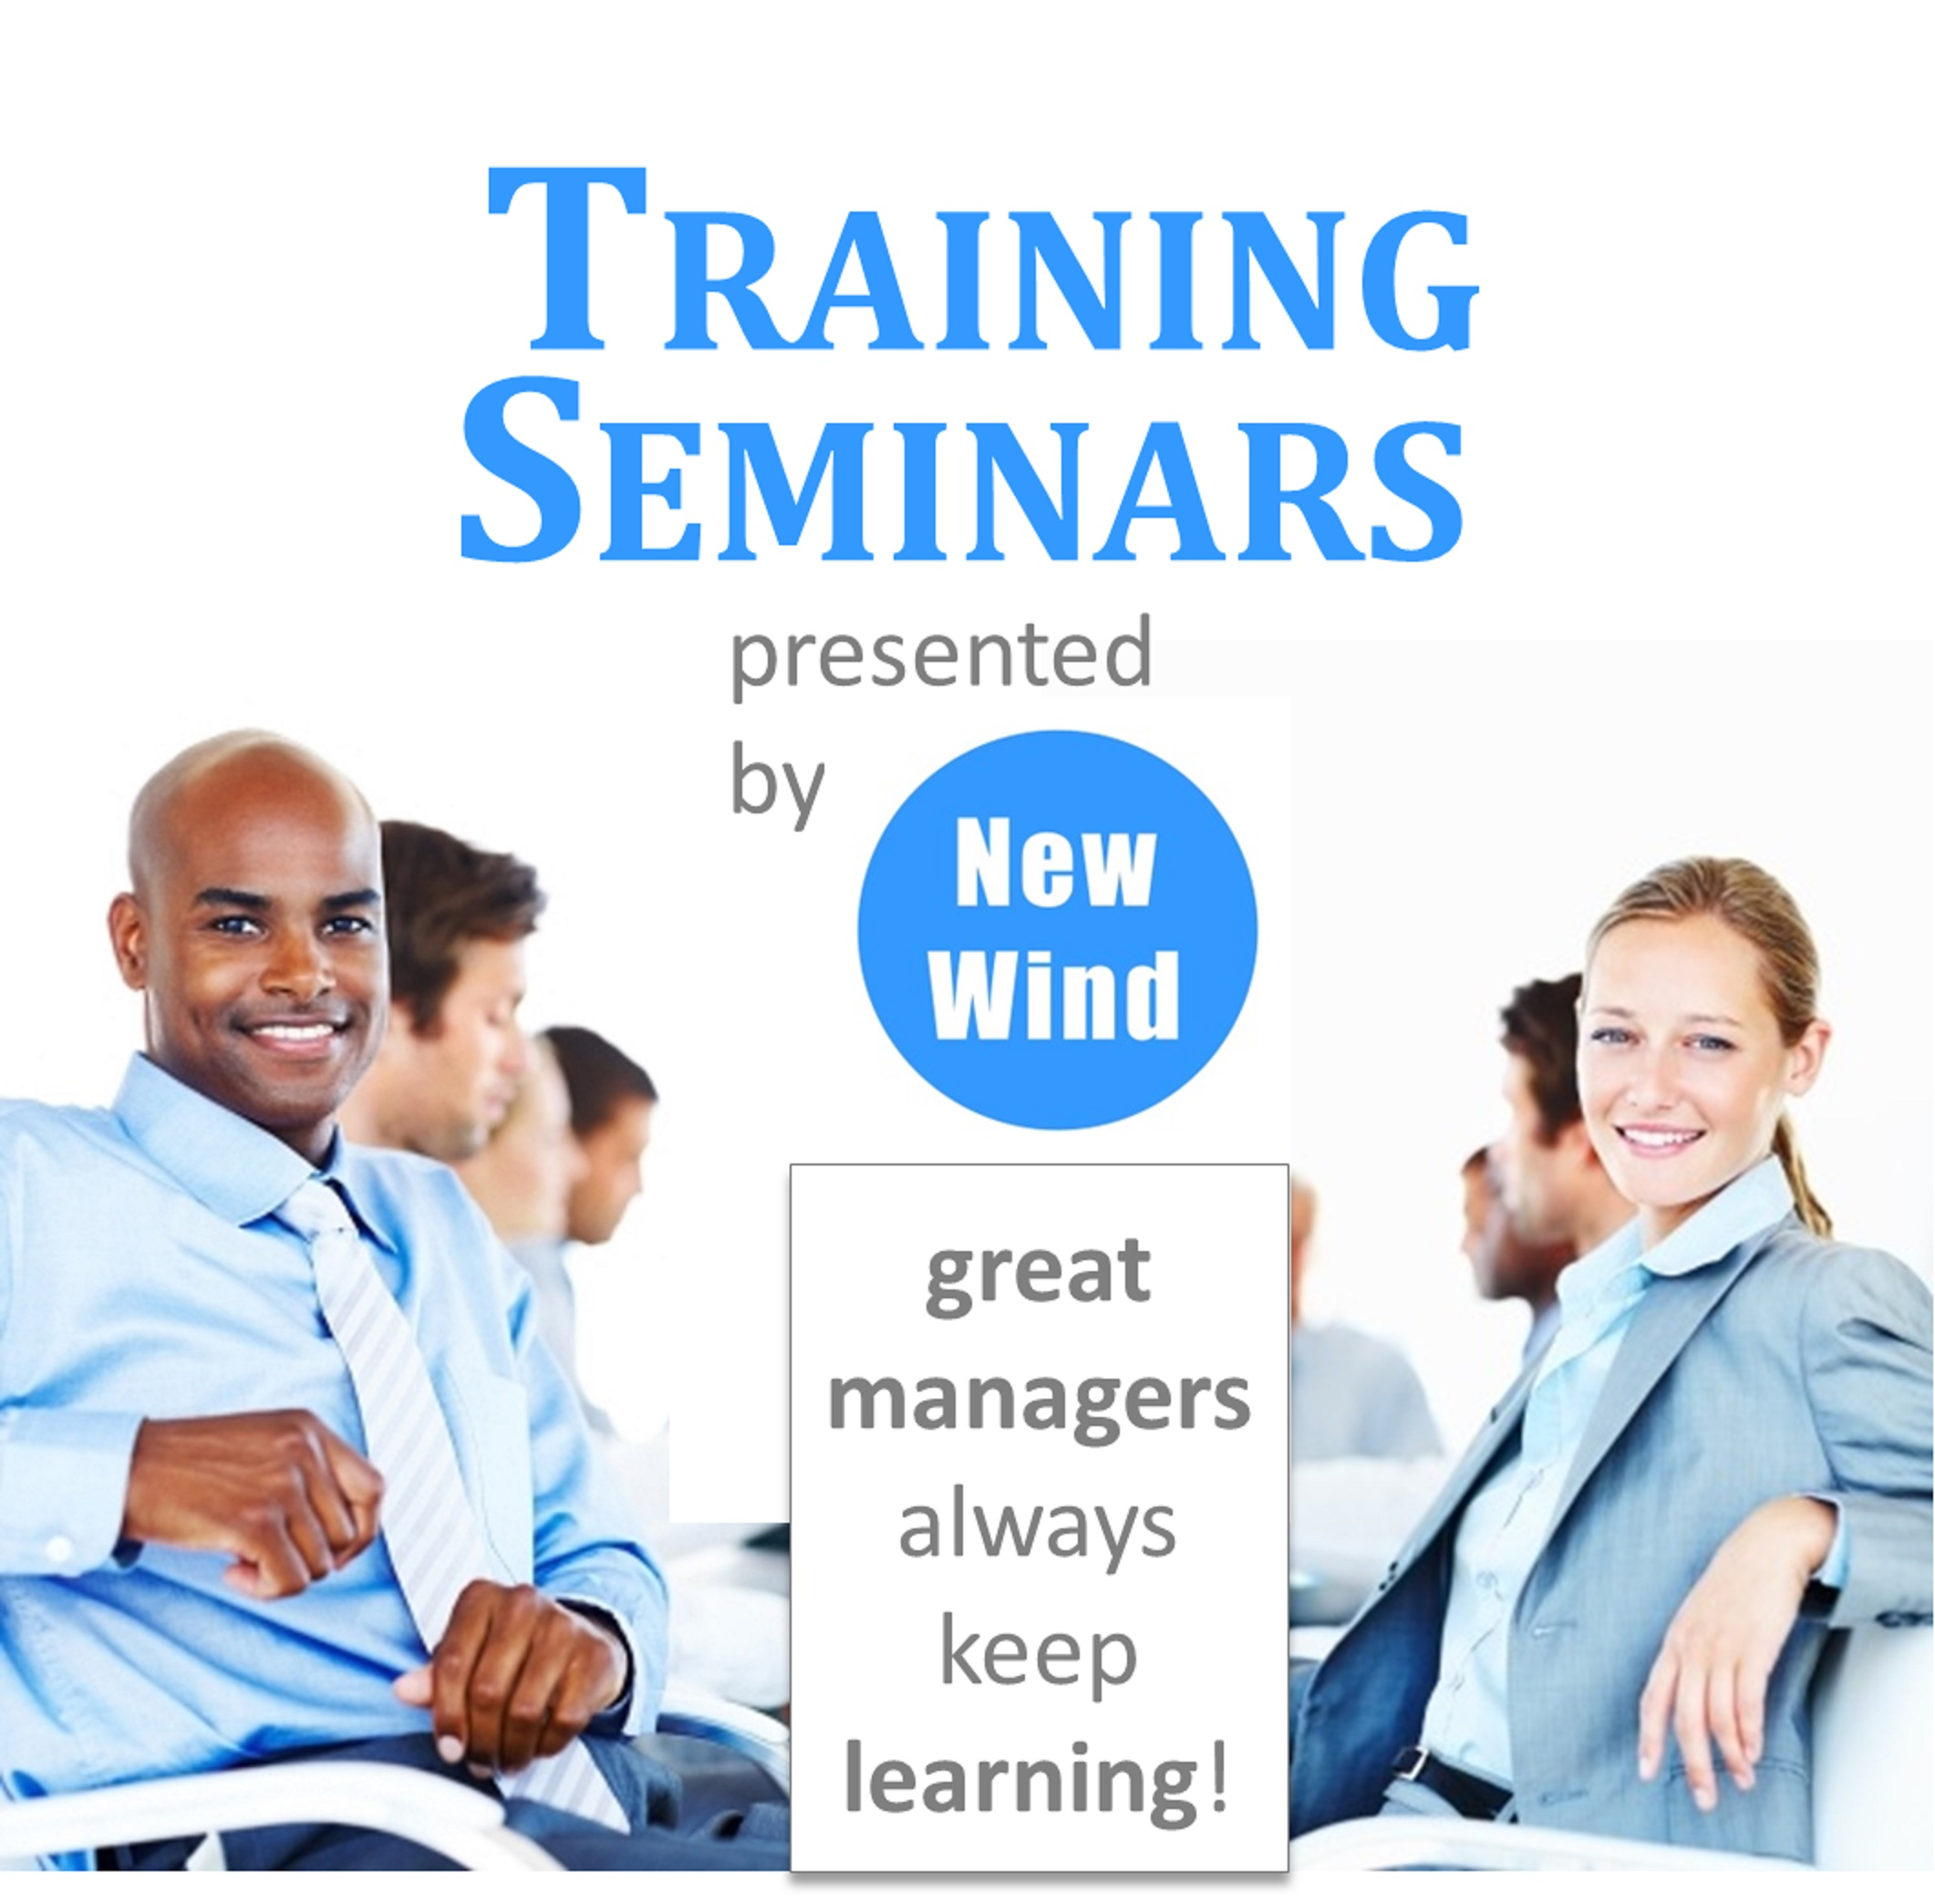 Training Seminars by New Wind